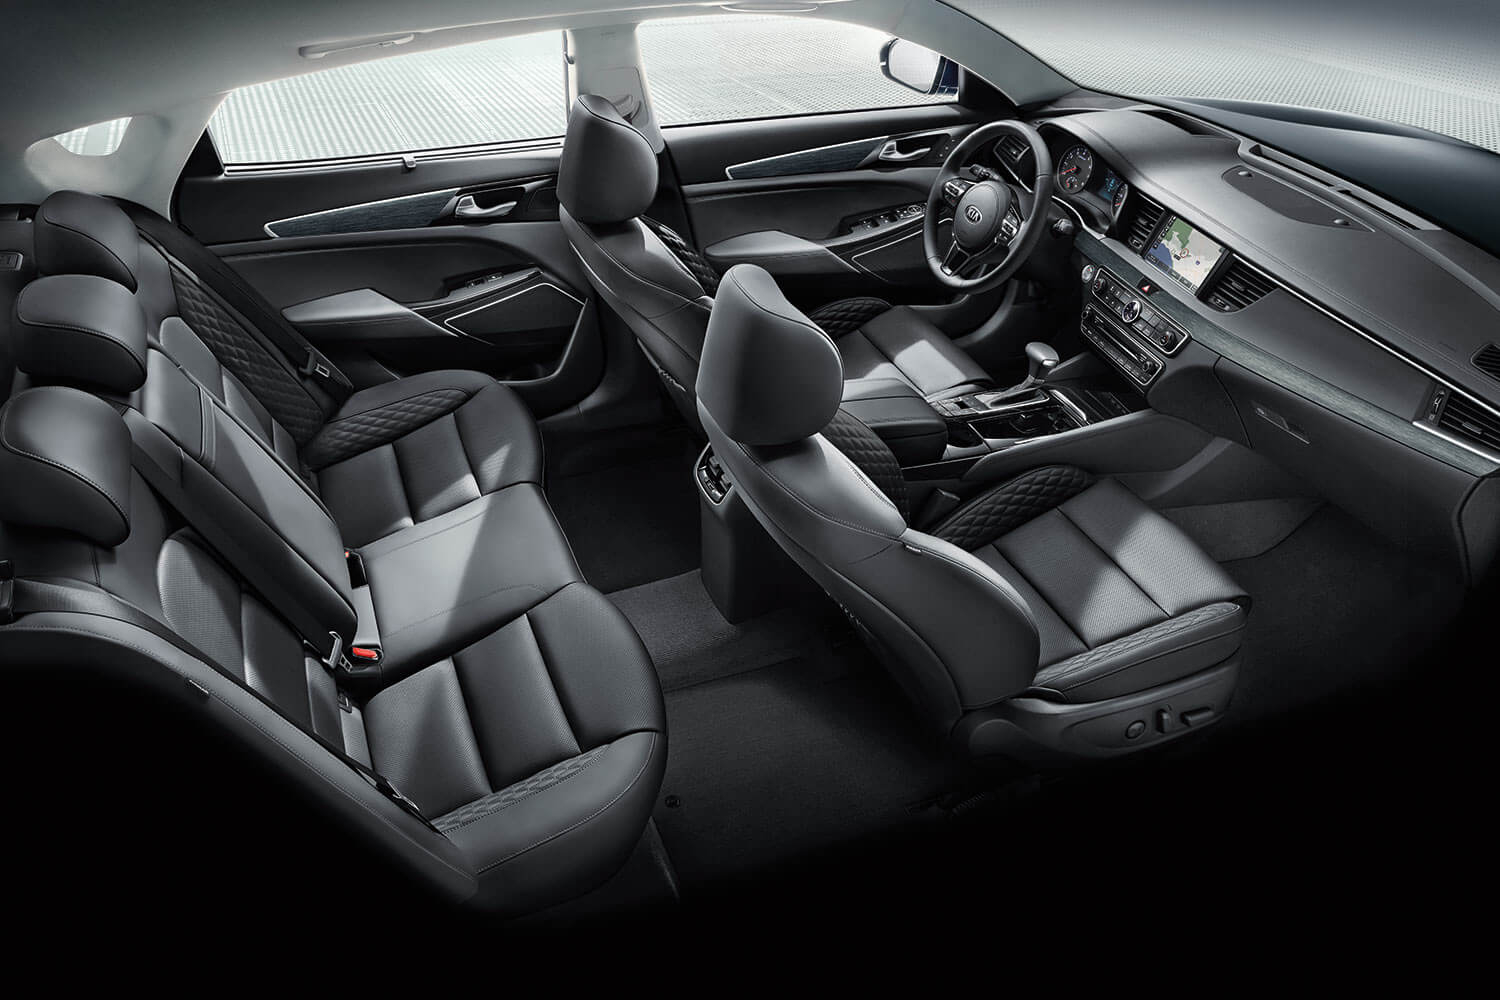 Kia Canada - Cadenza - 2022 Kia Cadenza Canada Specification, Interior Concept